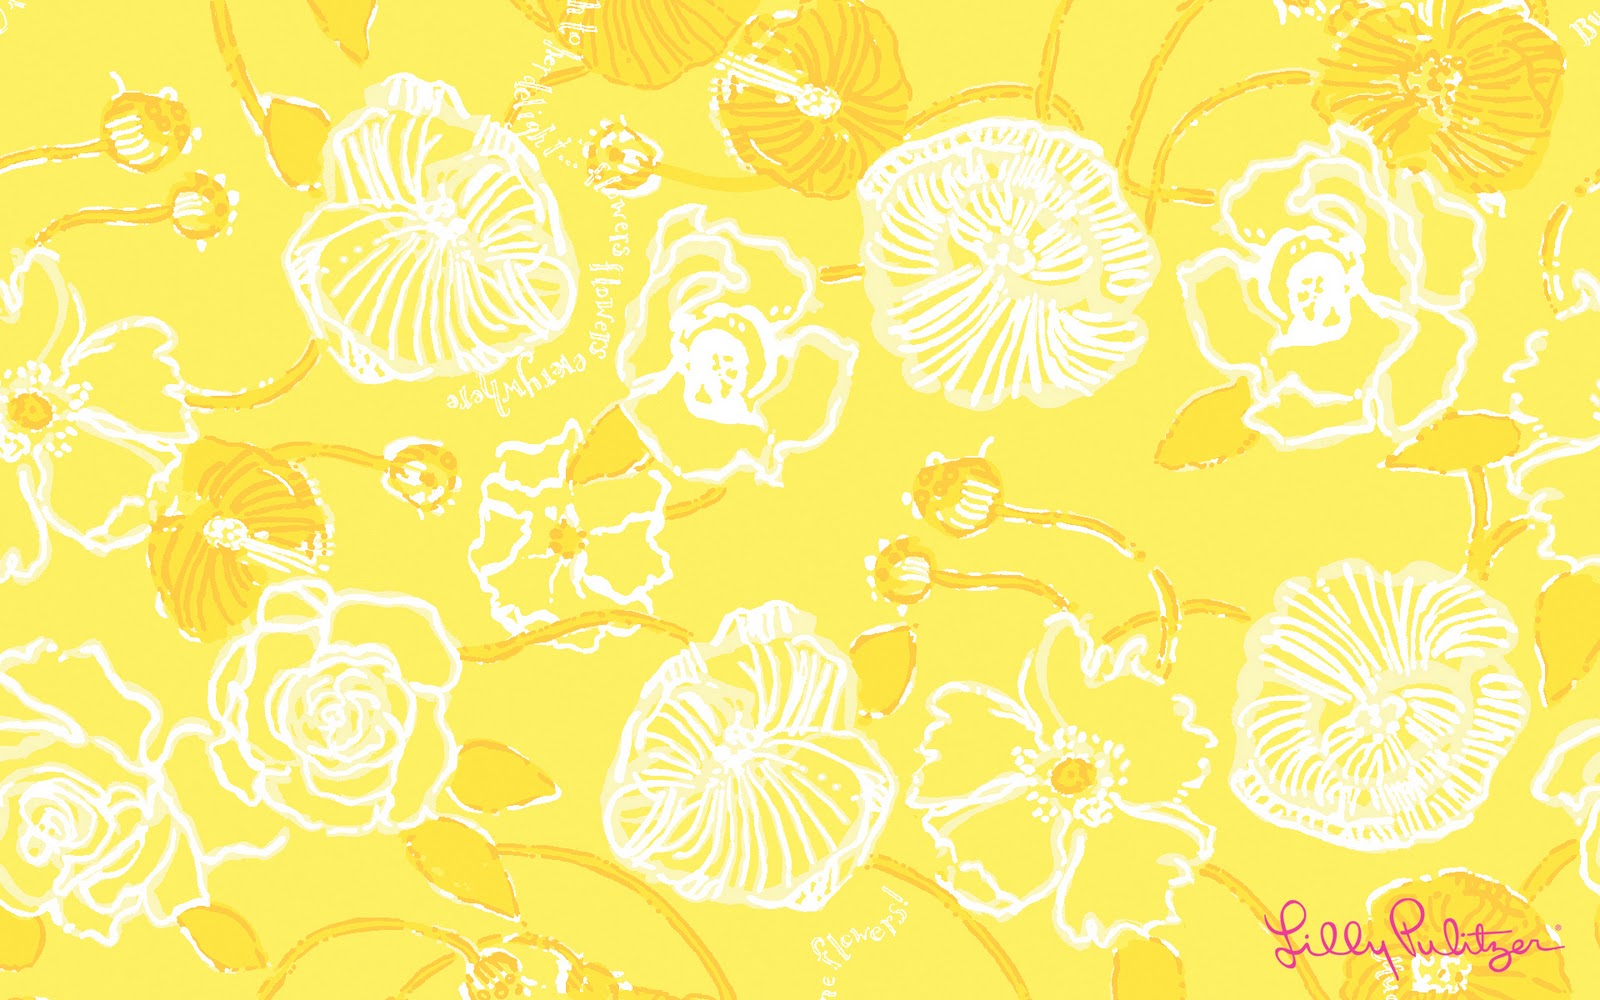 Yellow Wallpaper Obsessd With Wallpaper Quotes Lilly Pulitzer Rebeccanicholeratliff